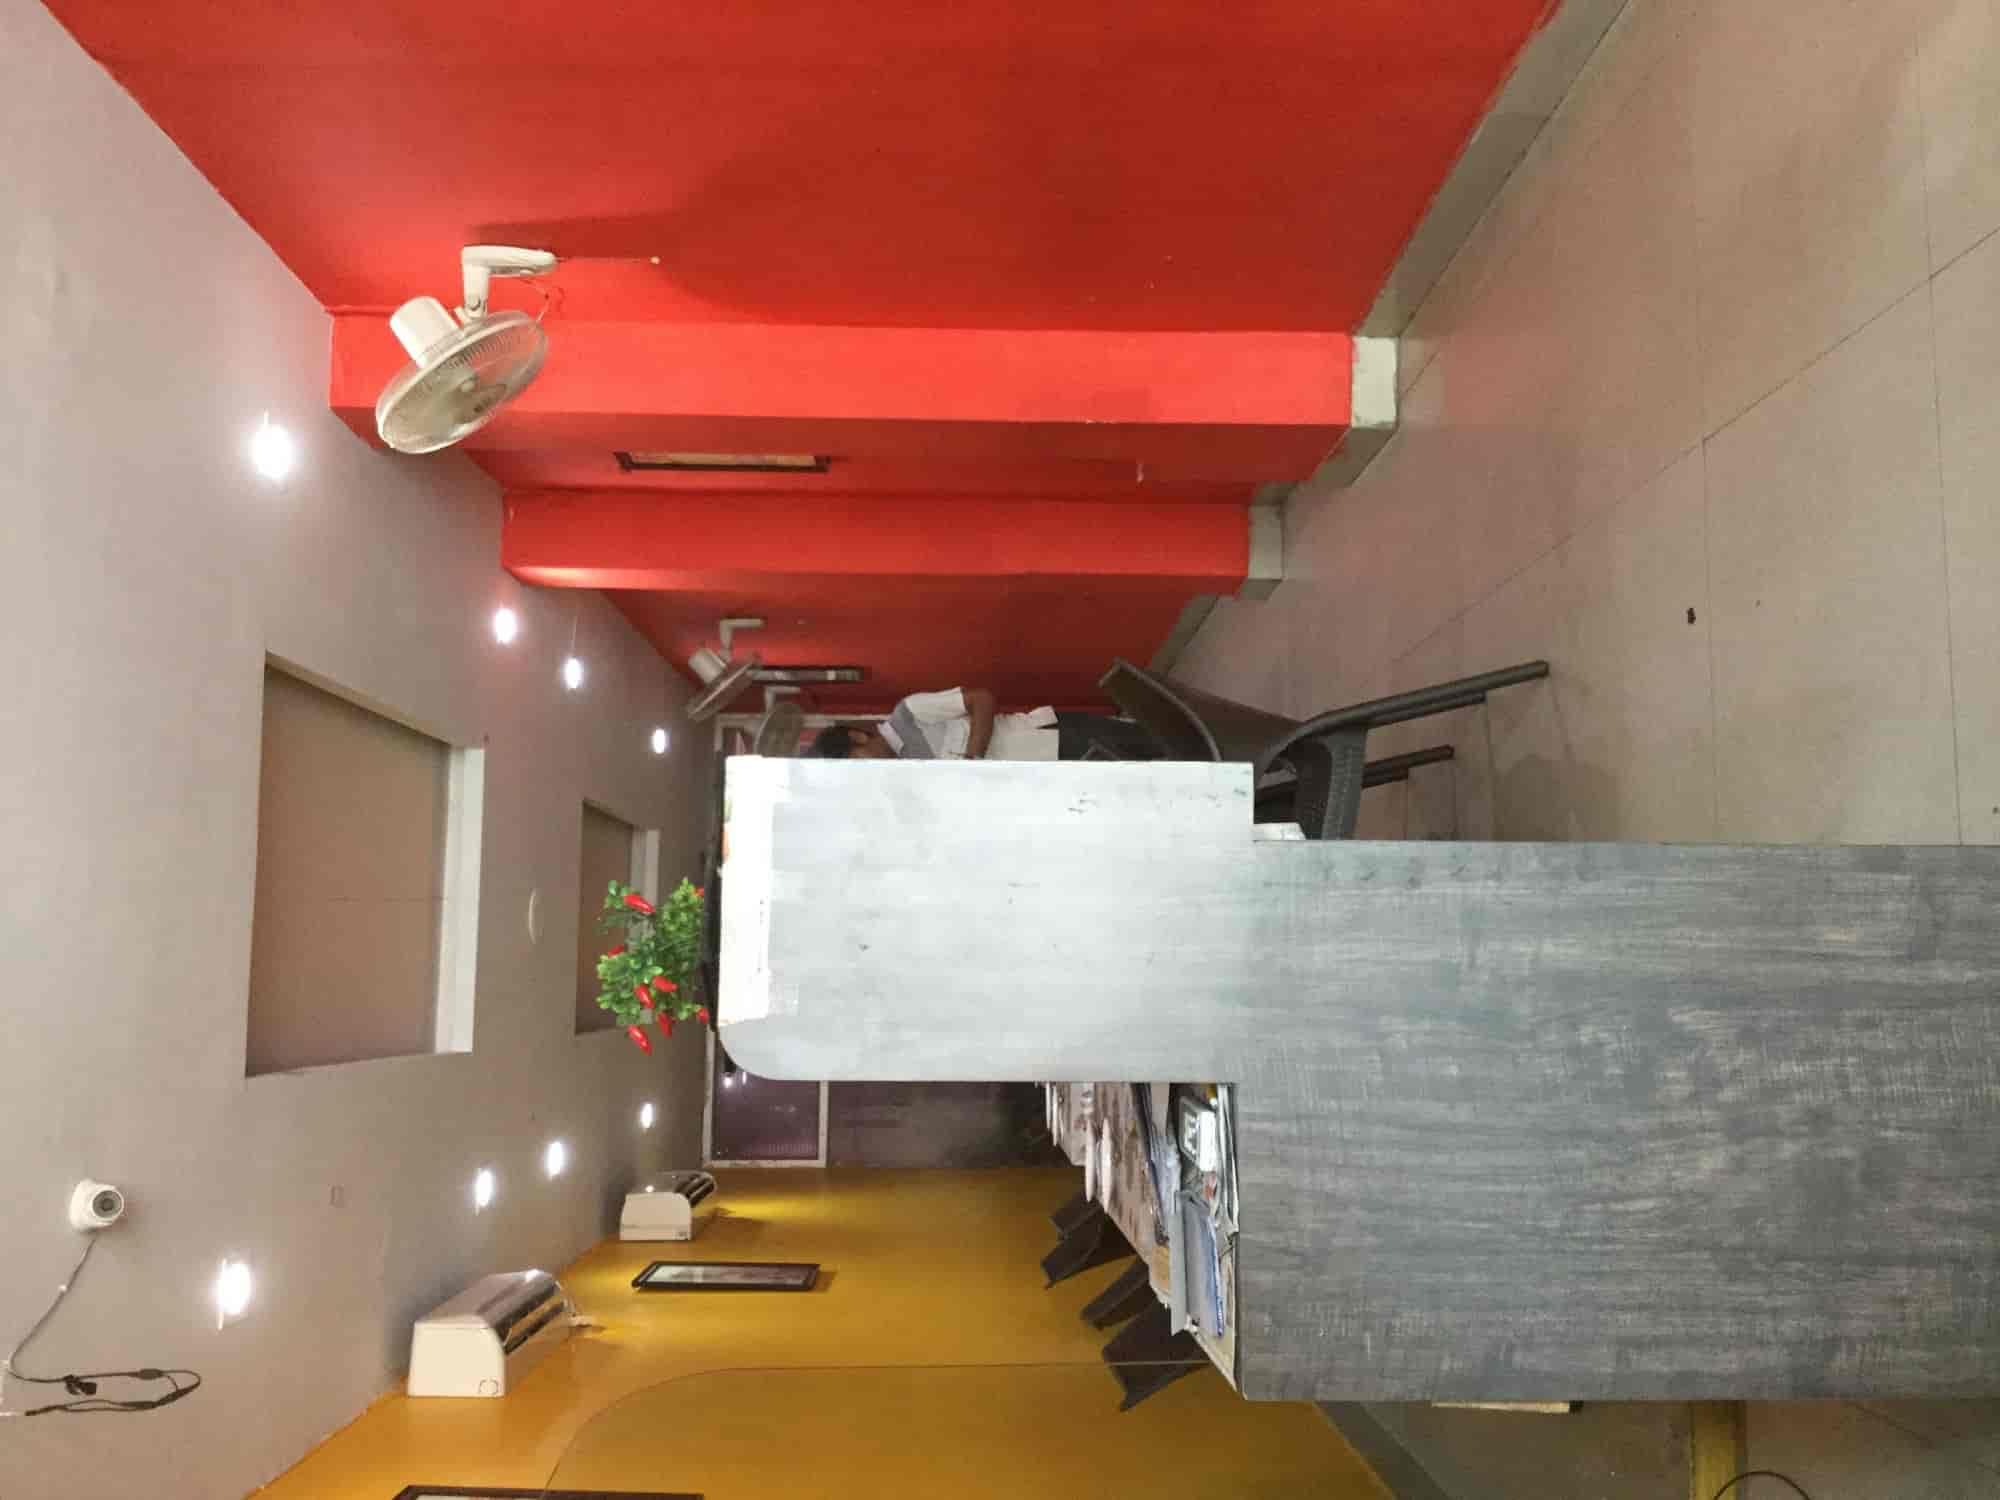 Krazy Kitchen Photos, Kapoorthala, Lucknow- Pictures & Images ...